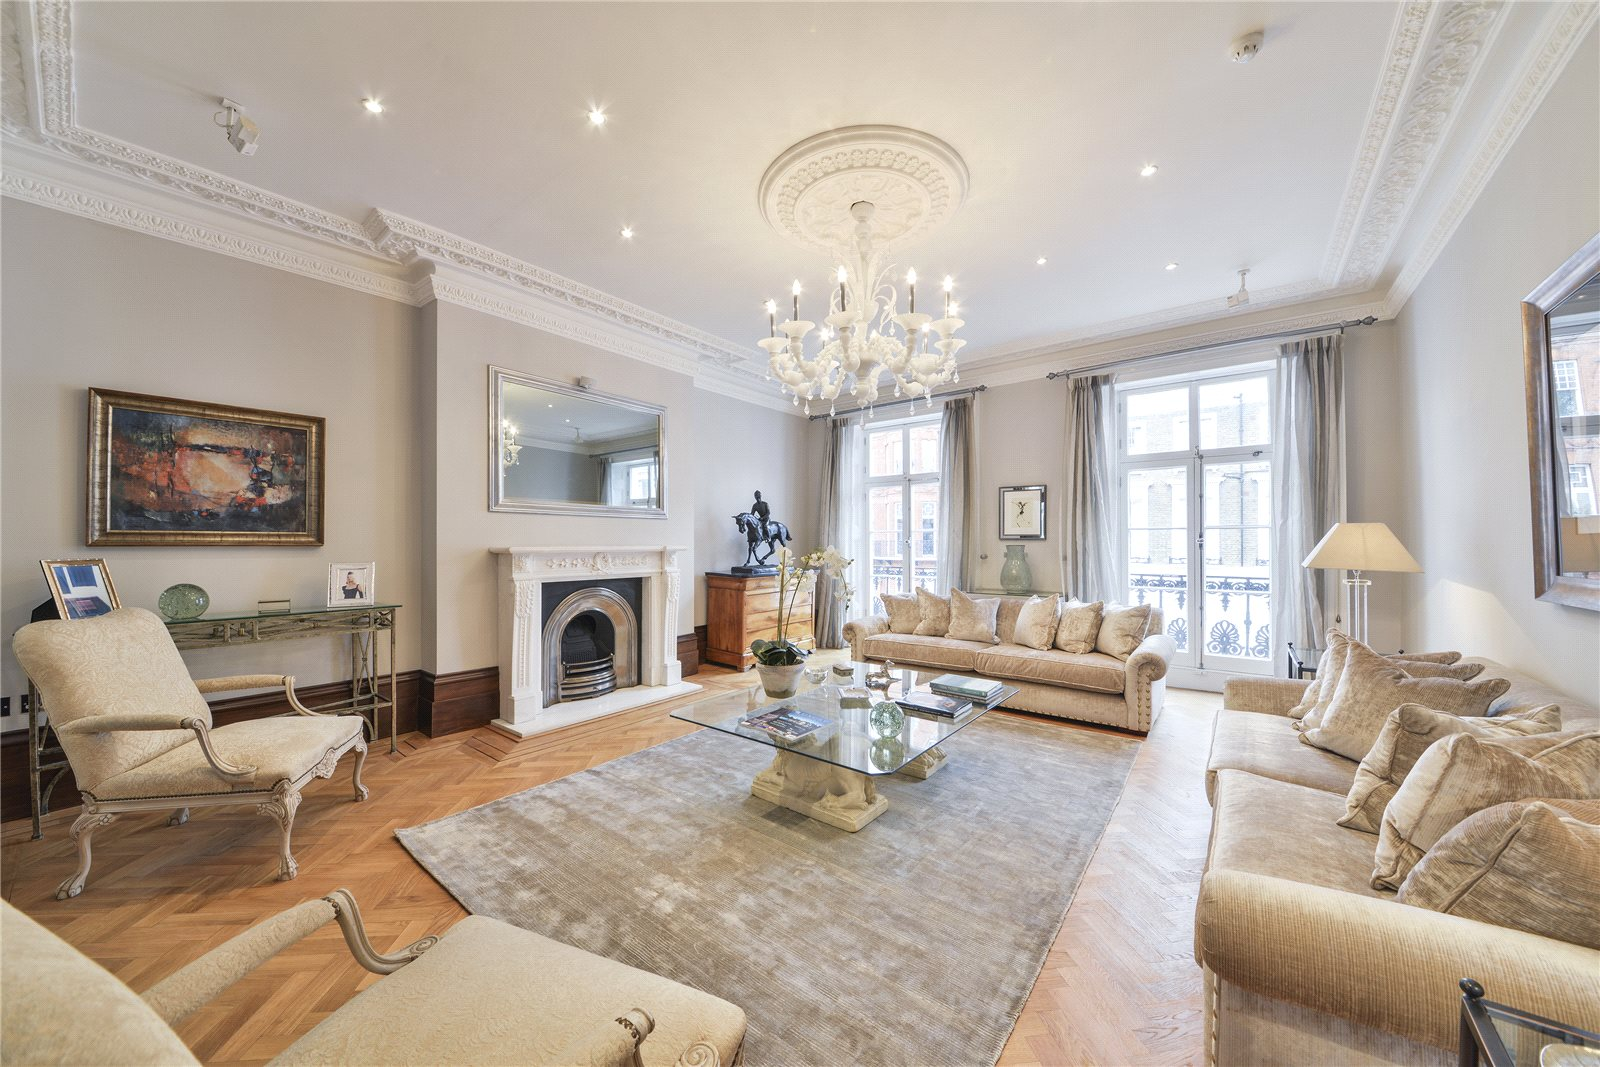 Single Family Home for Sale at Oakley Street, Chelsea, London, SW3 Chelsea, London, England